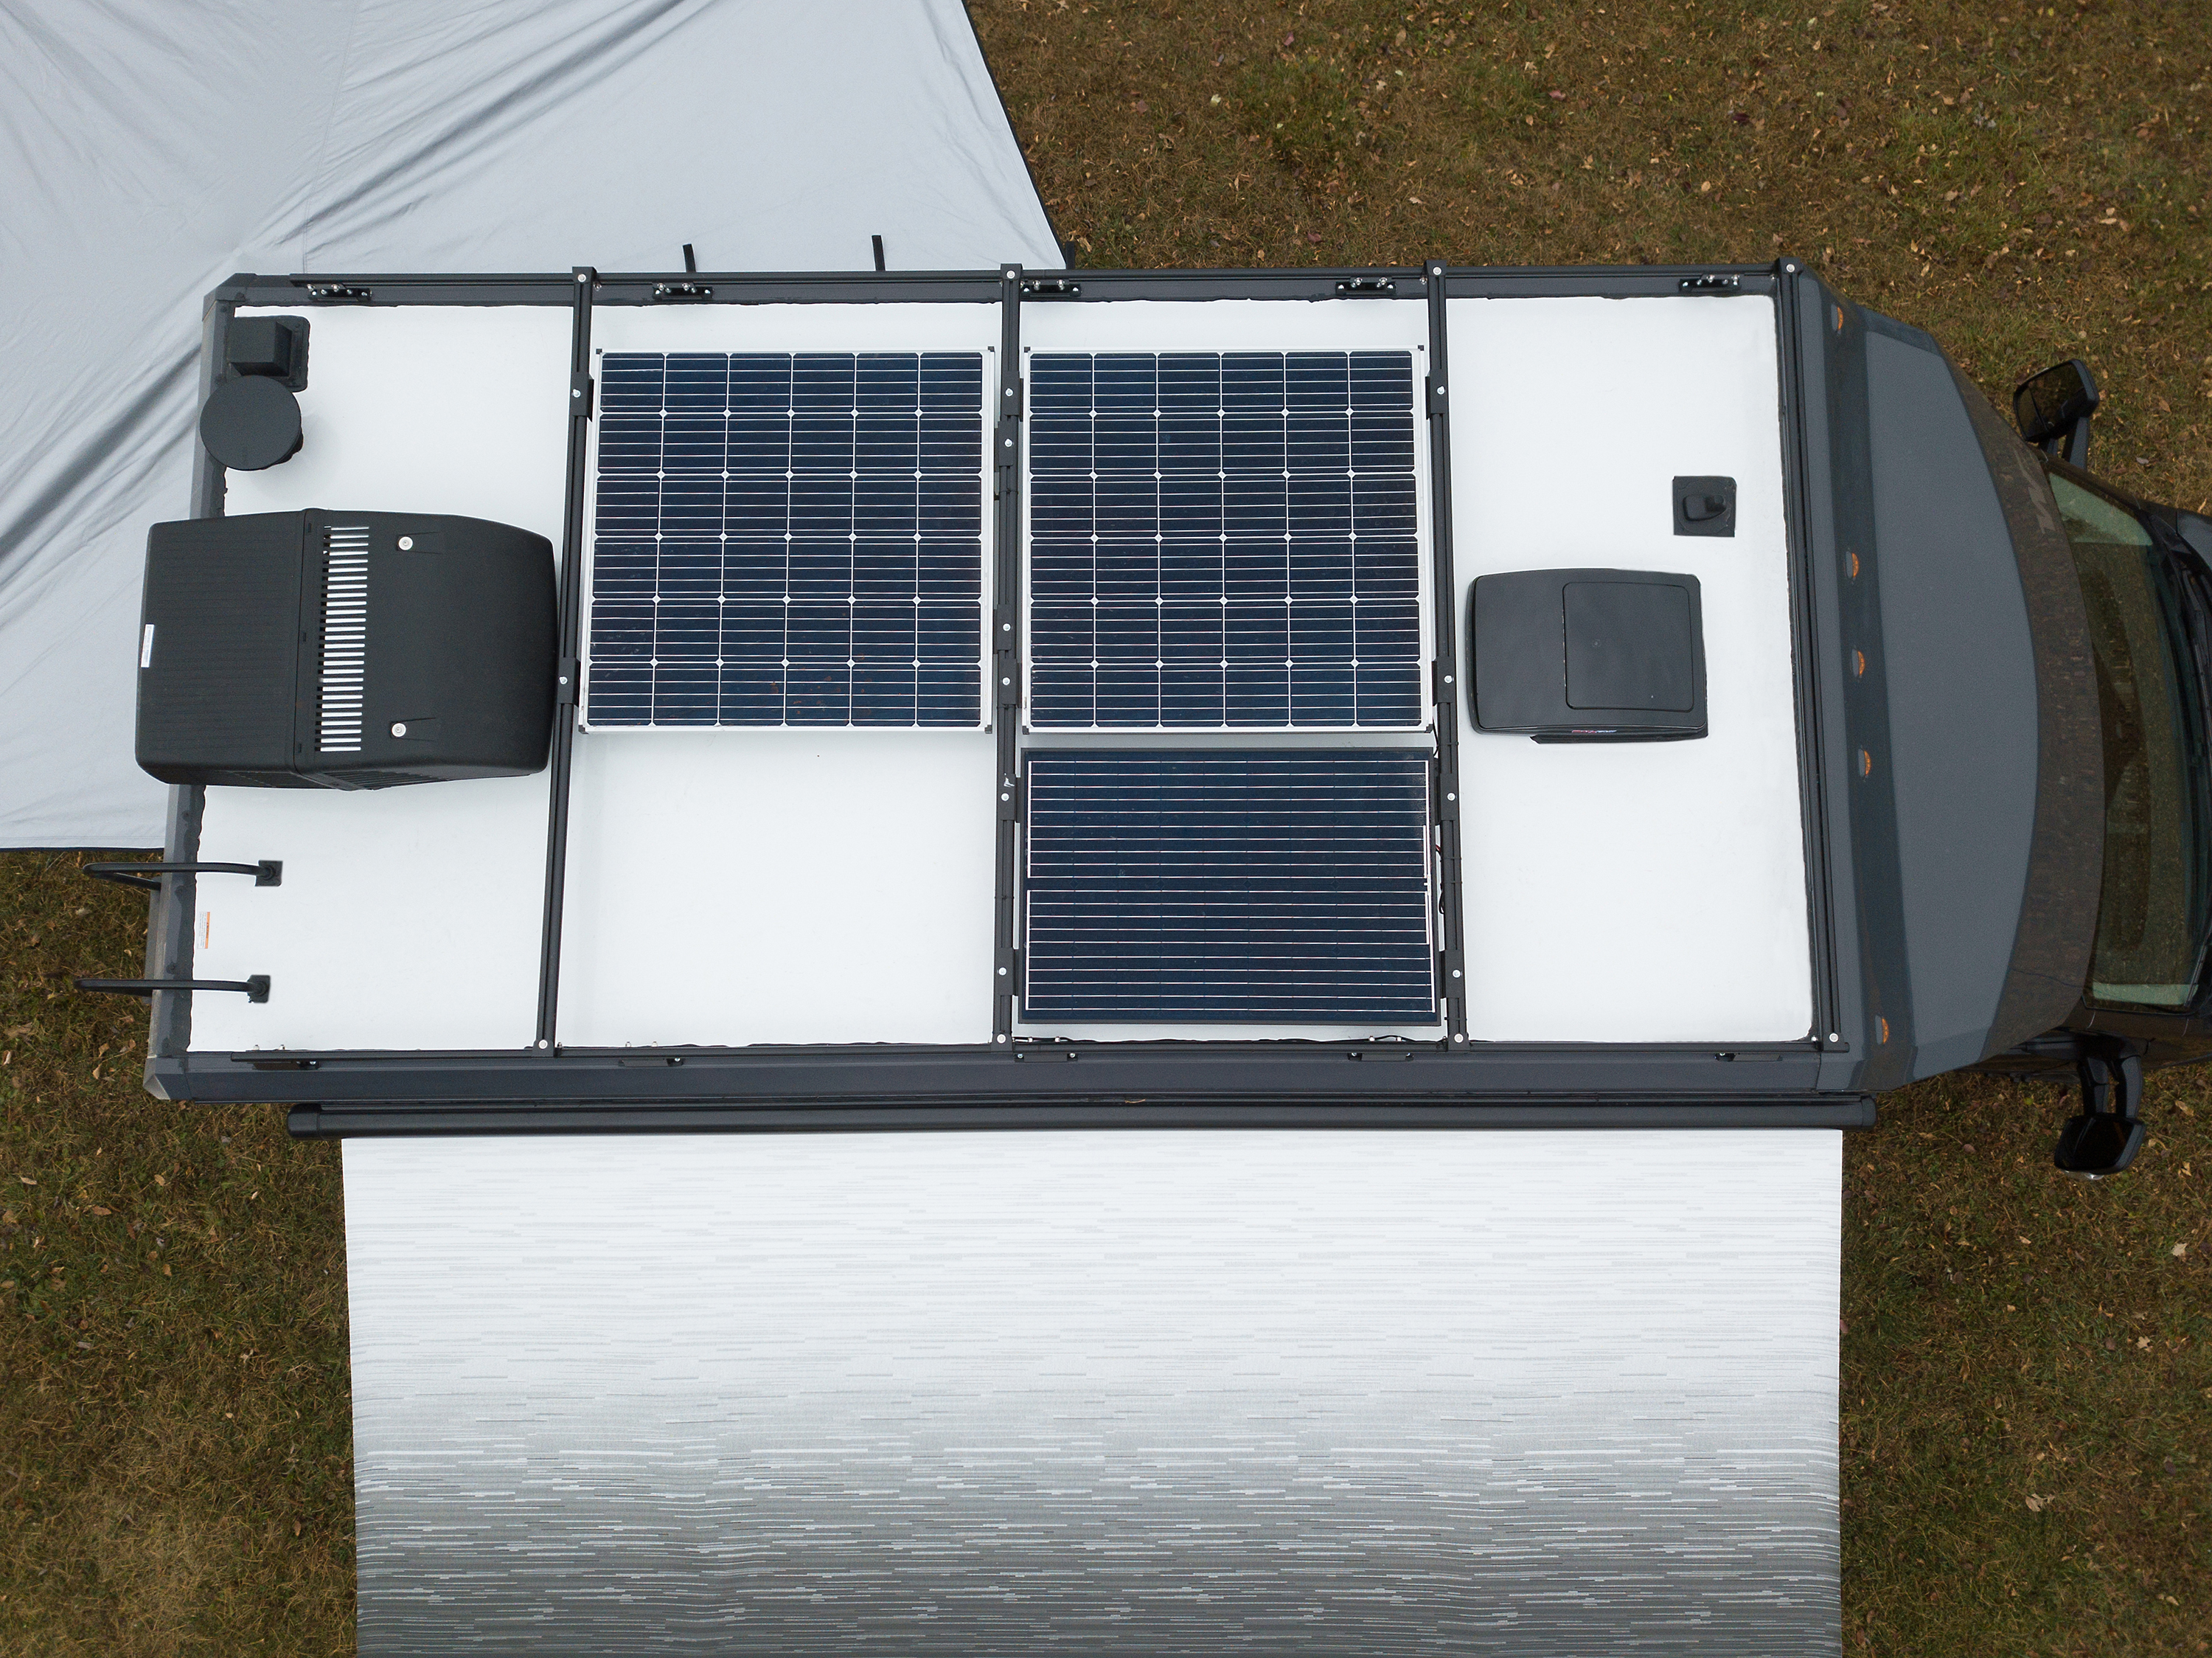 Three solar panels combine for 455-watts of power production